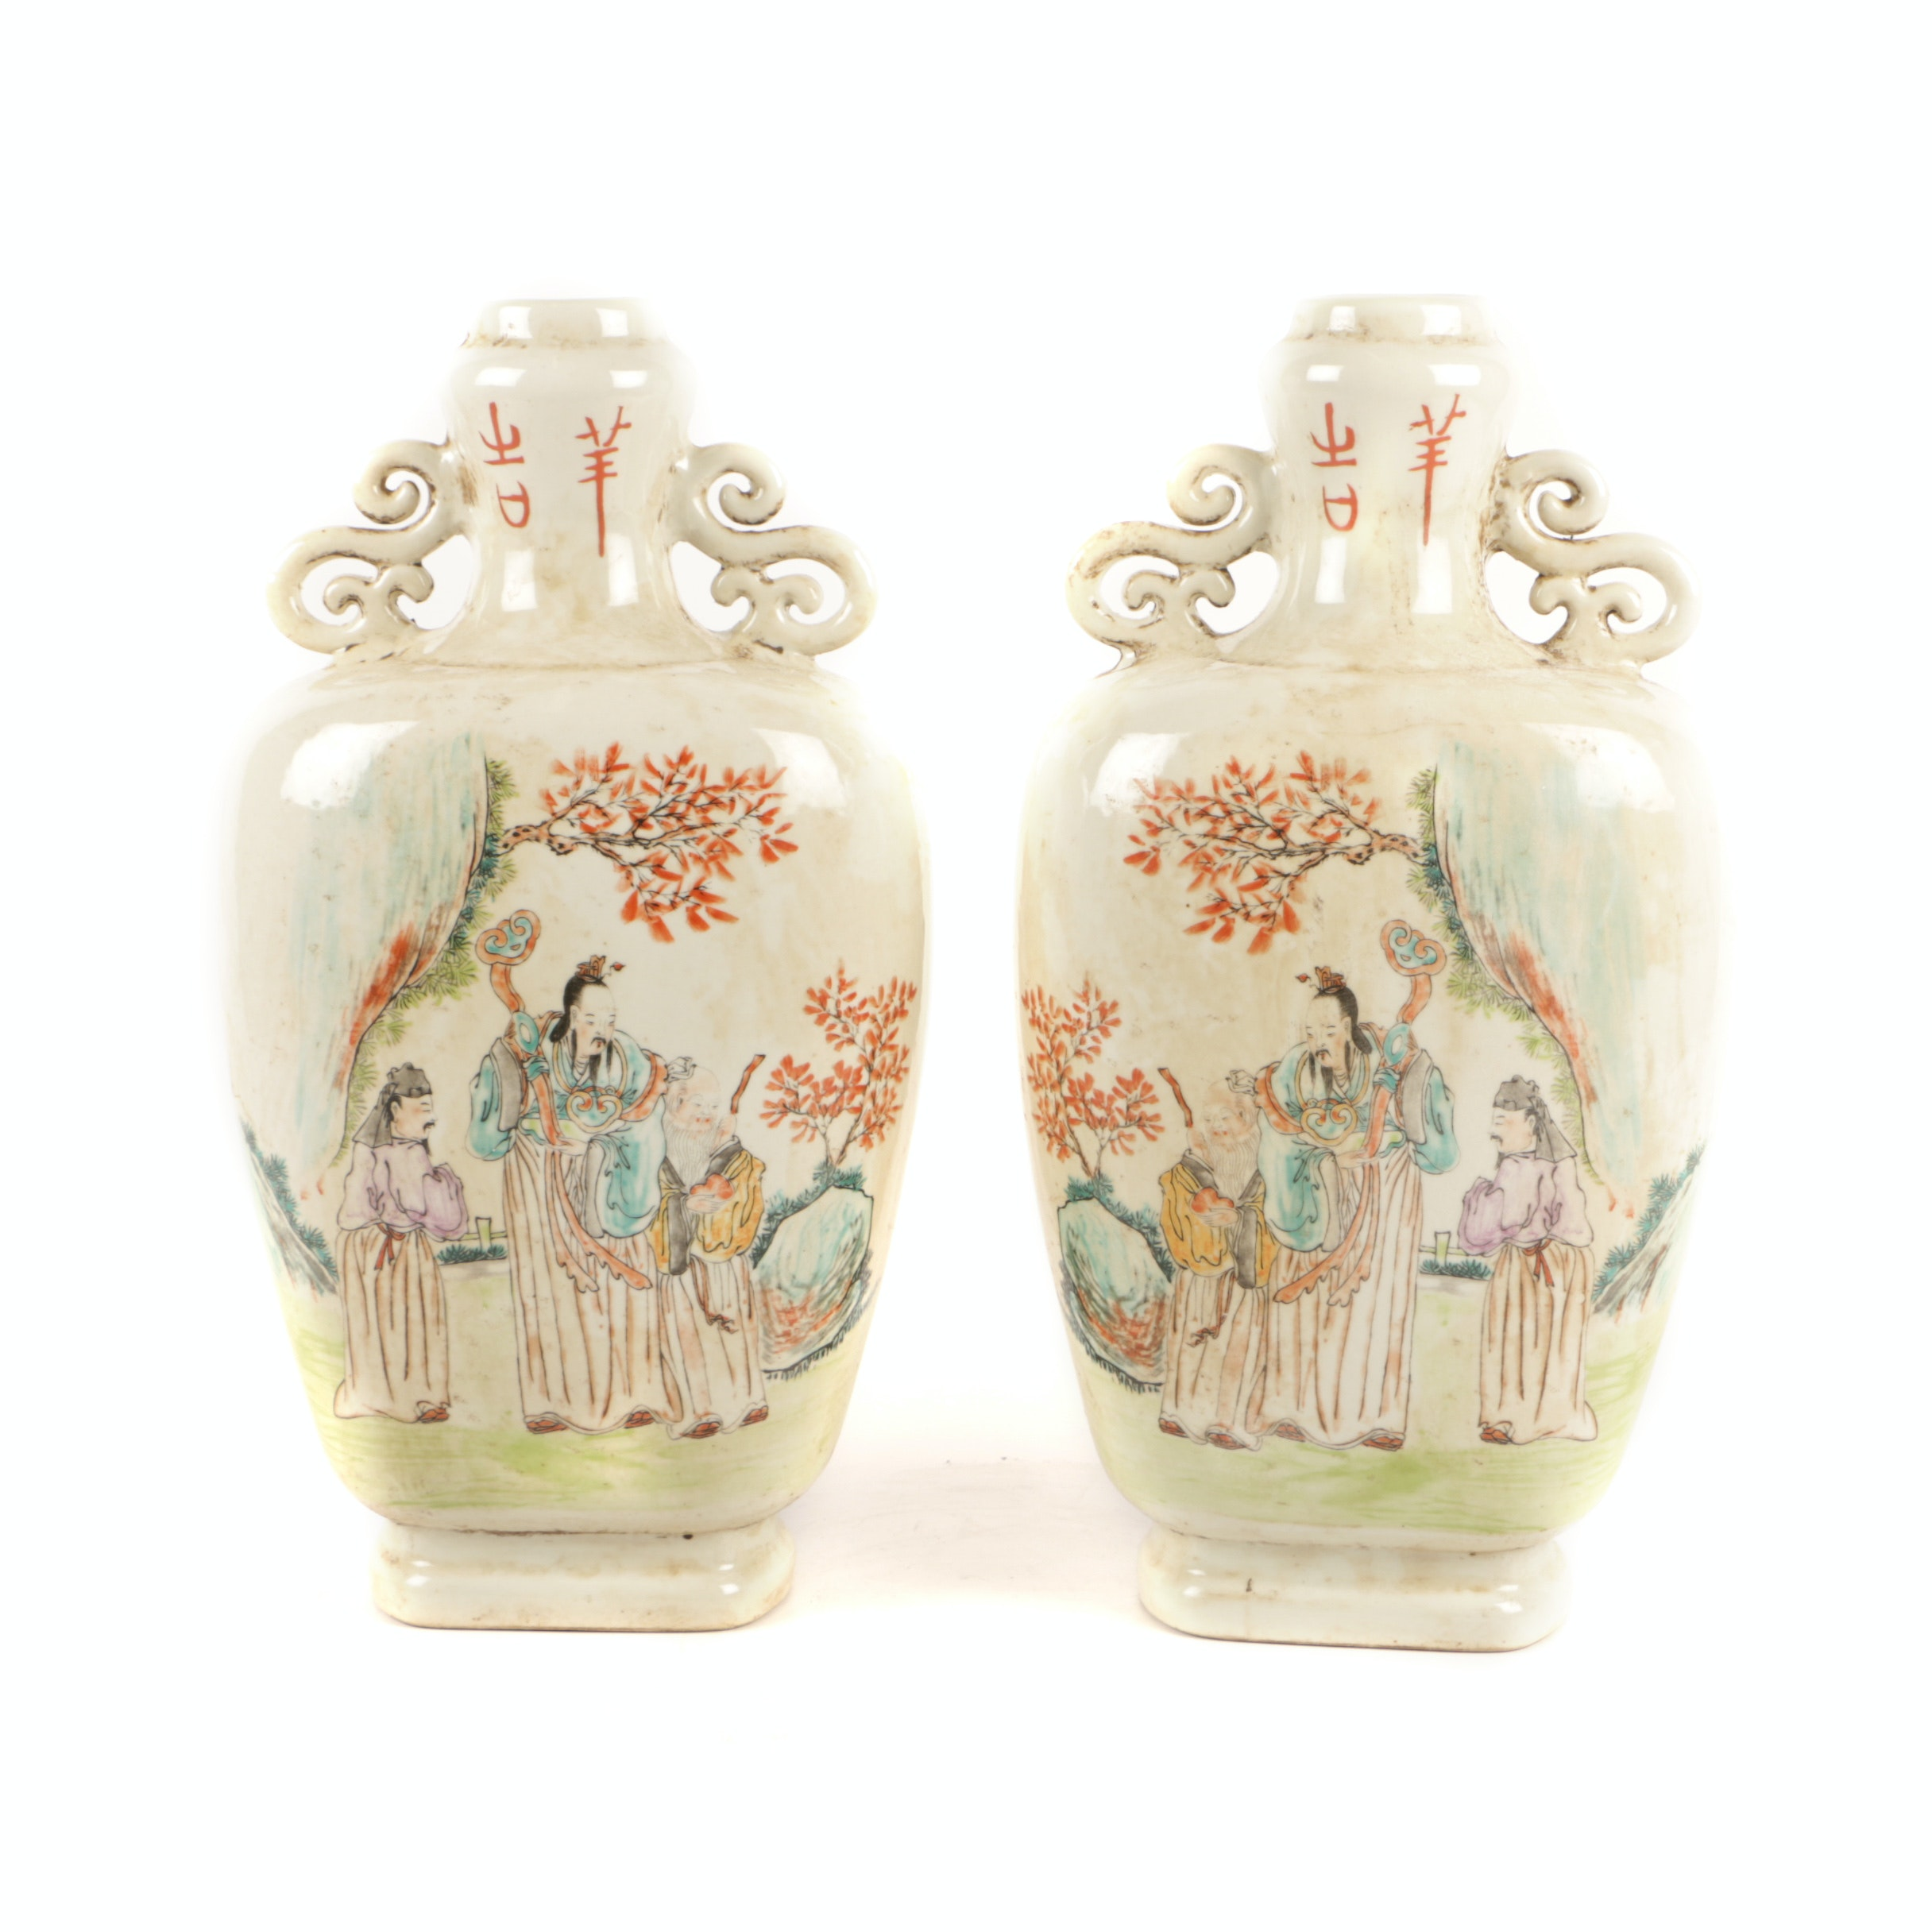 Vintage Chinese Hand-Painted Porcelain Vases